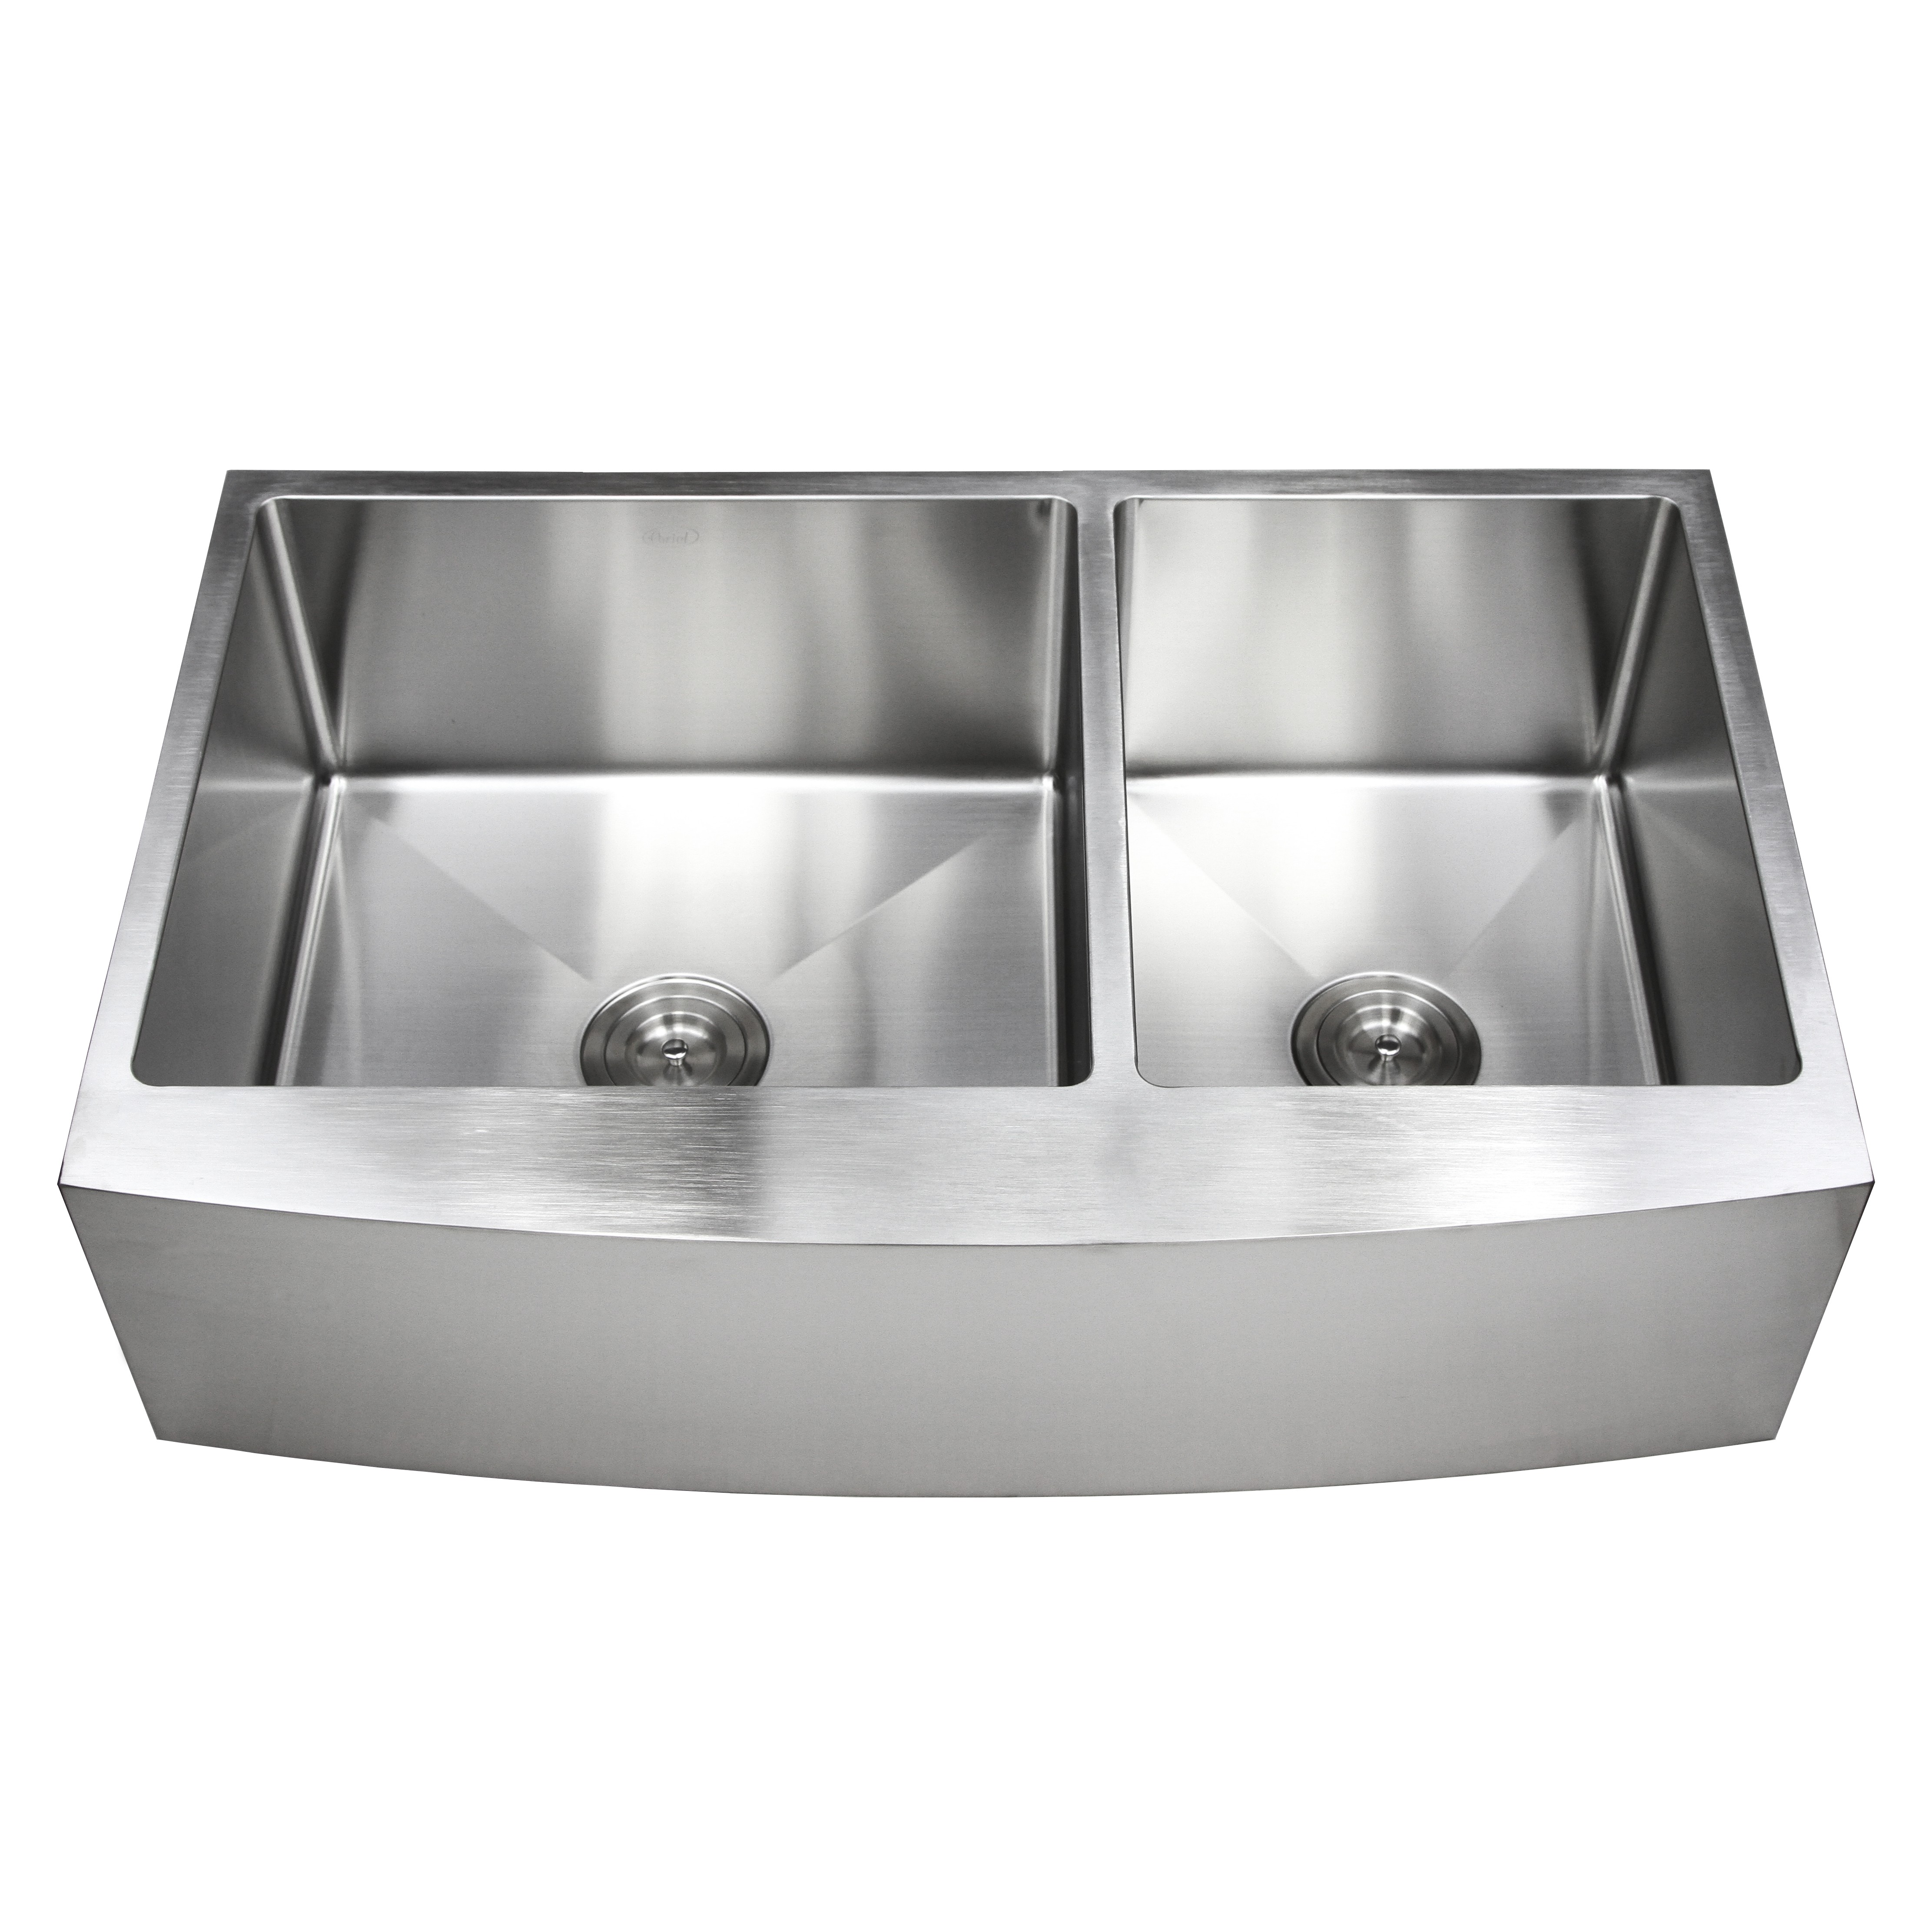 White apron kitchen - 36 Inch Stainless Steel Curved Front Farm Apron 60 40 Double Bowl Kitchen Sink 15mm Radius Design